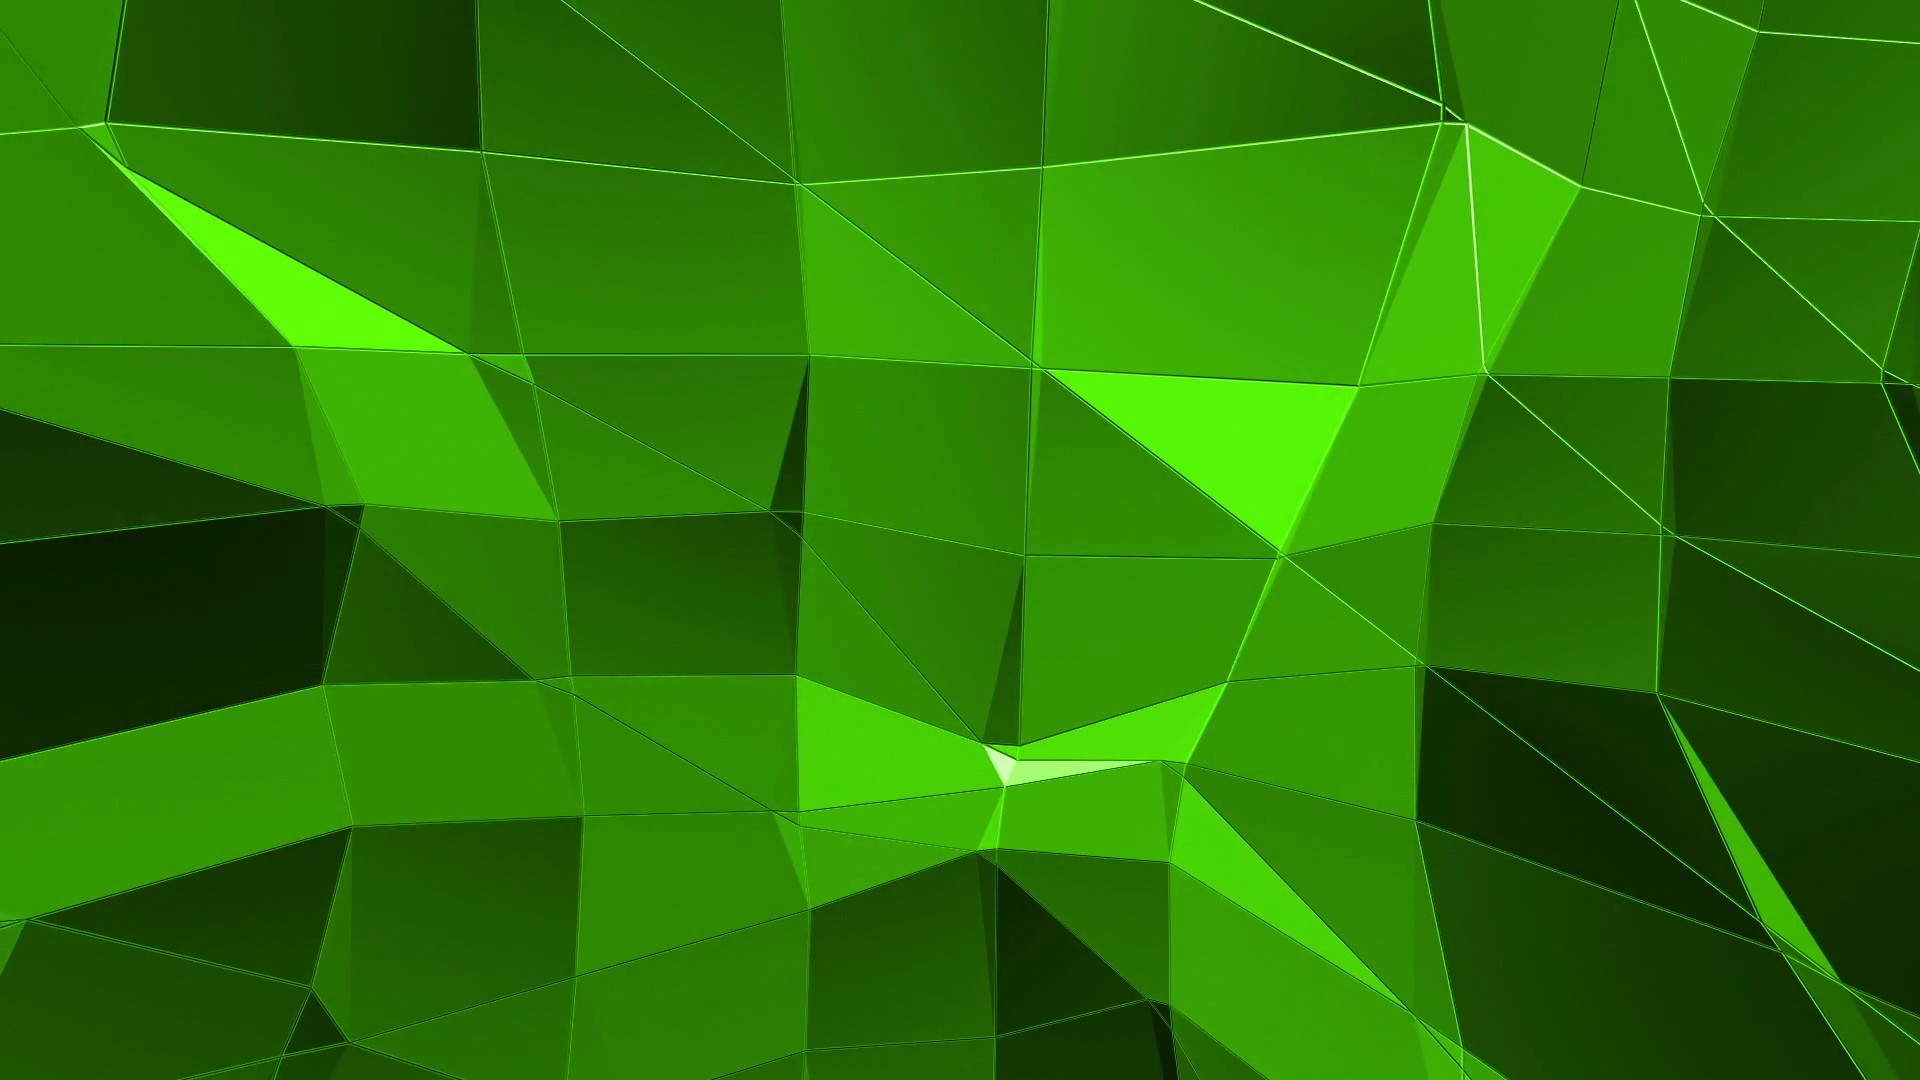 Cool Green Png - Green low poly background pulsating. Abstract low poly surface as ...